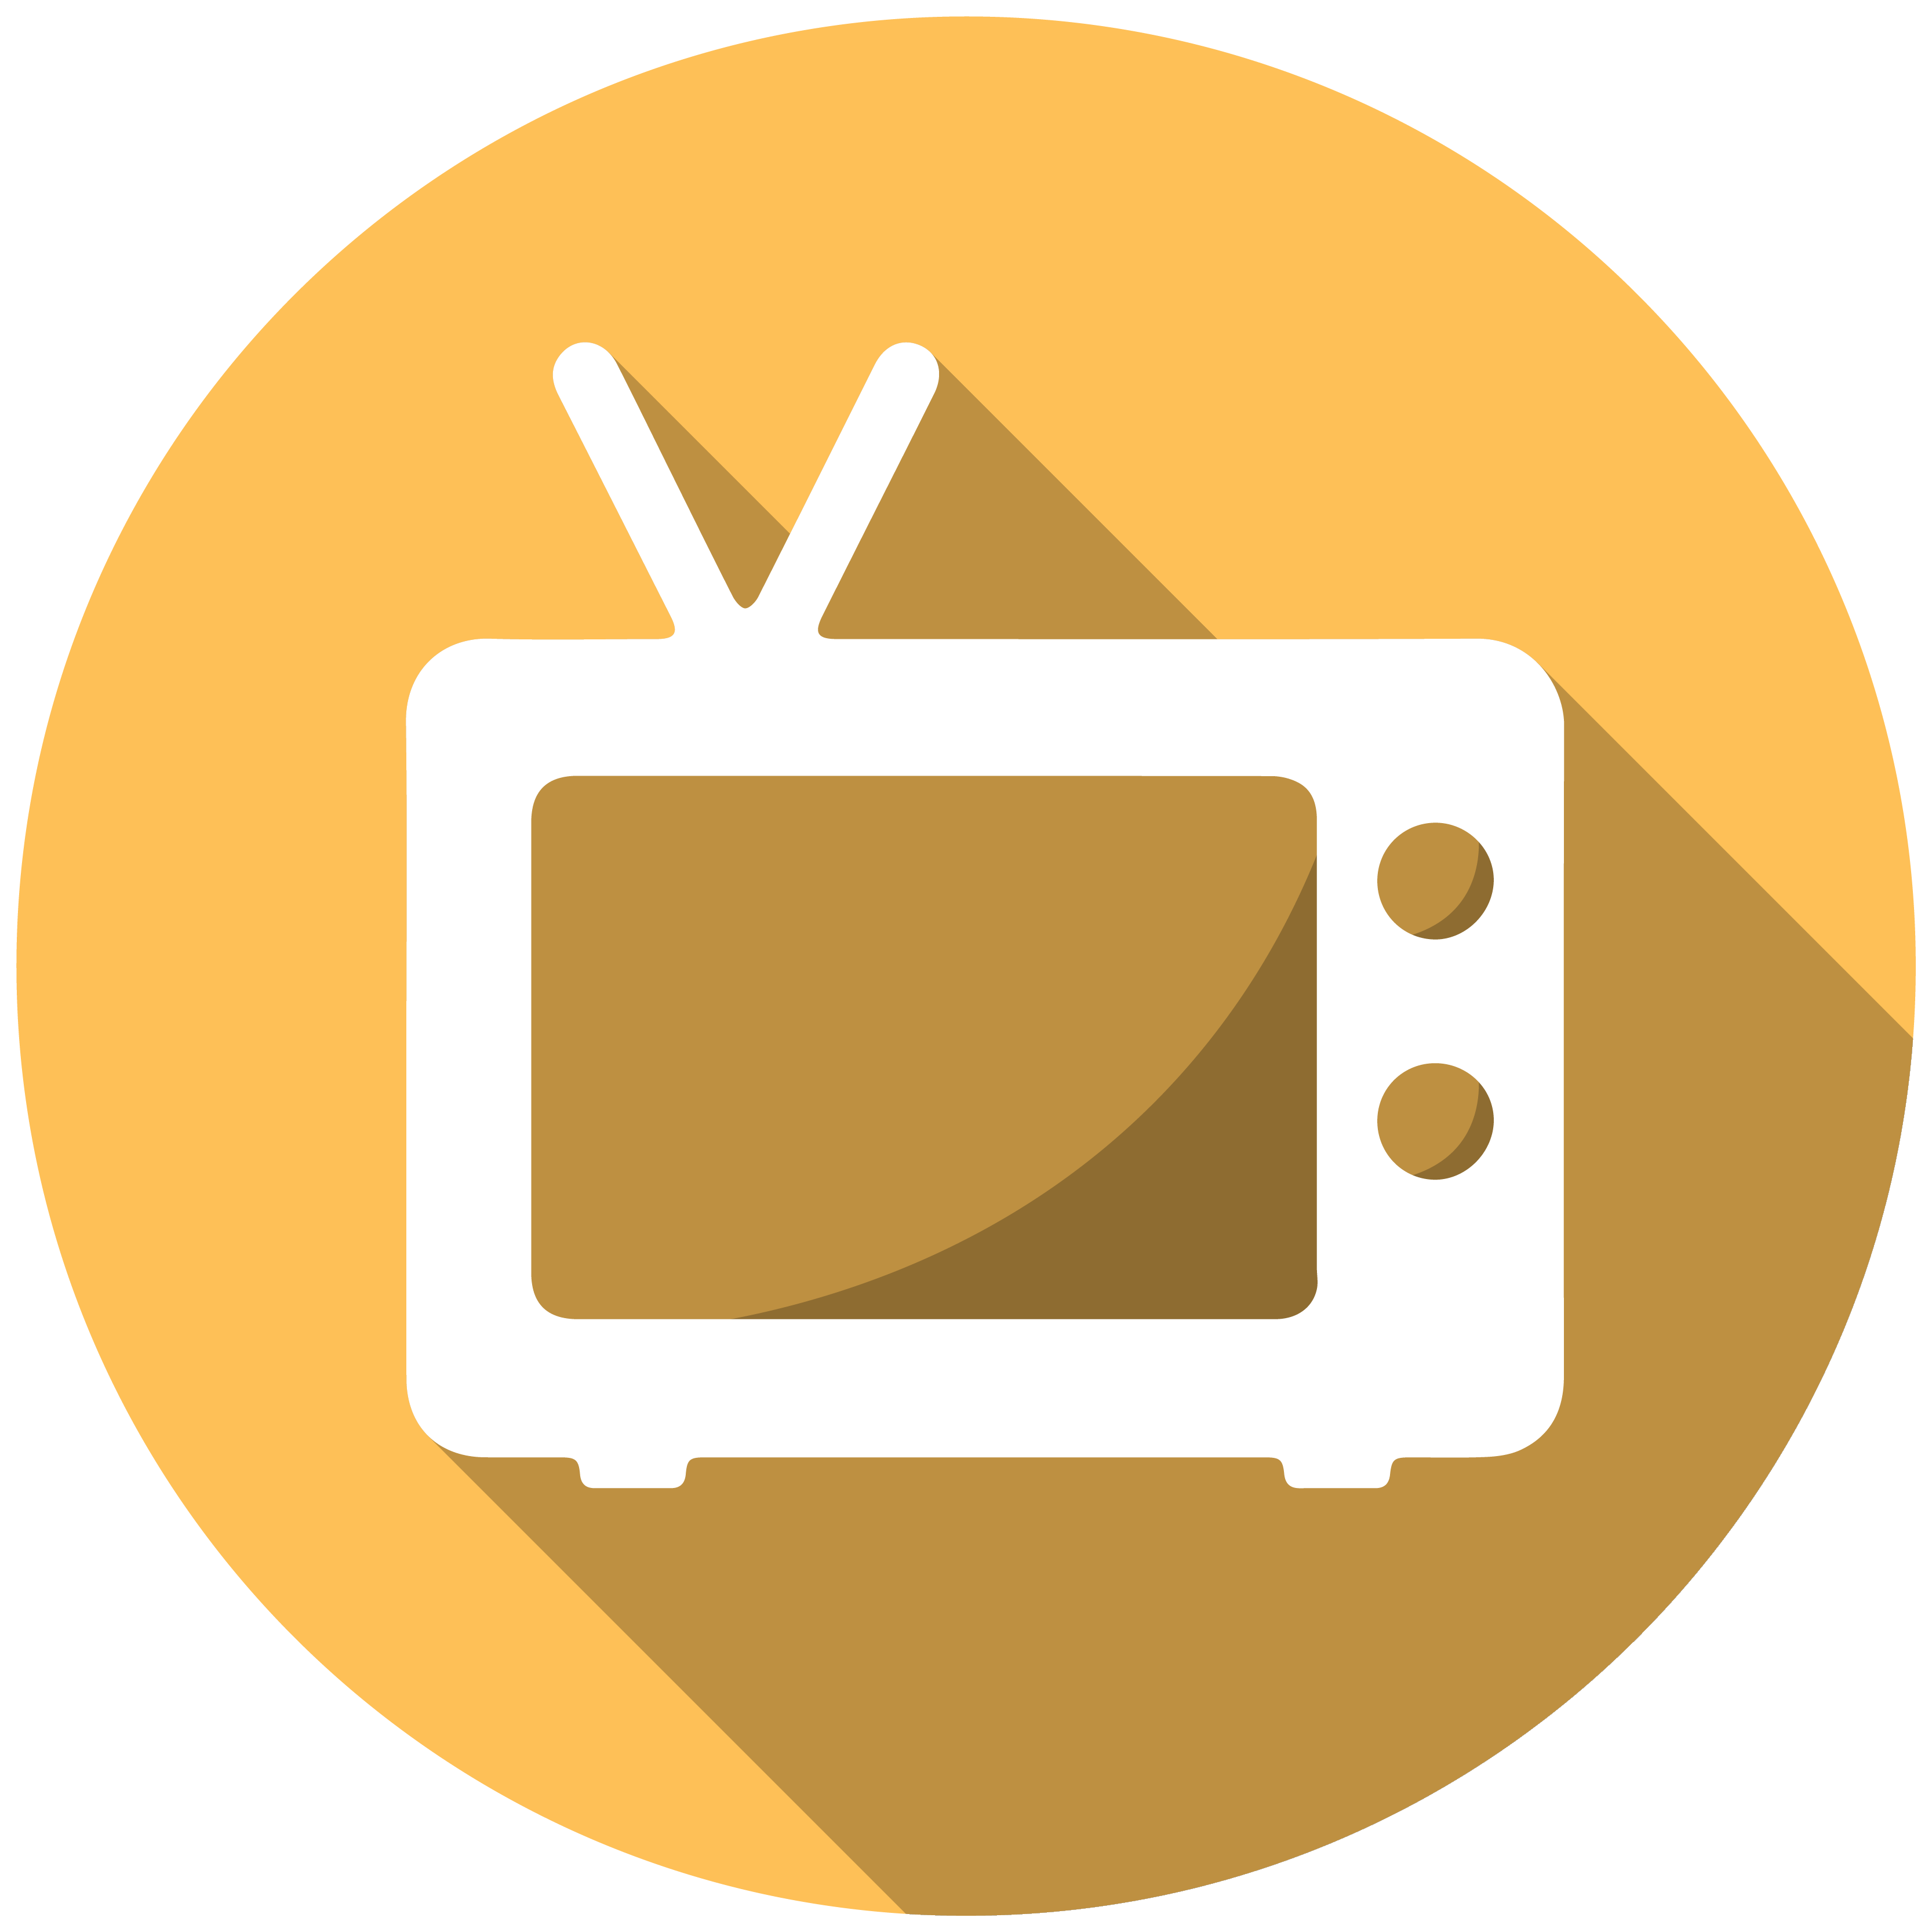 Egyptian clipart egyptian dynasty. Tv icon housing and